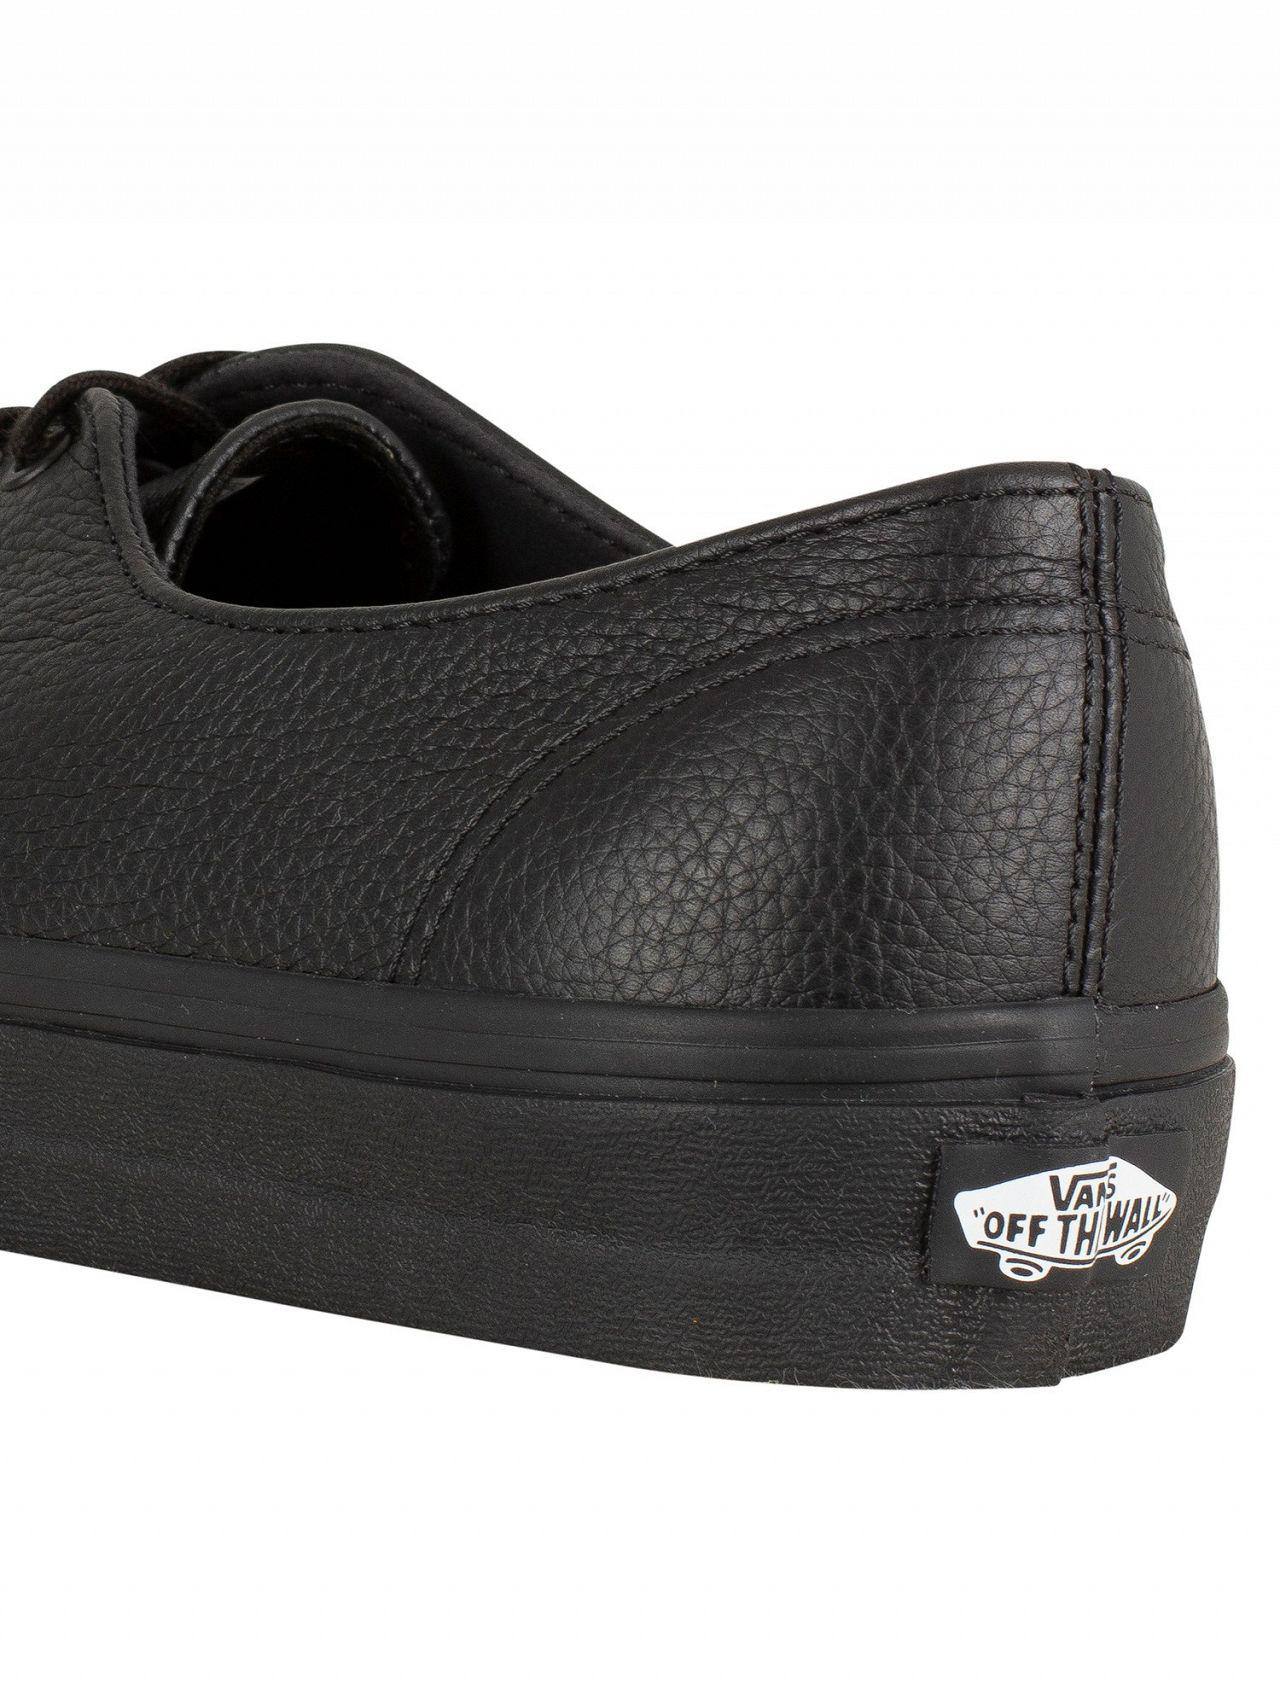 8d626435793d90 Lyst - Vans Black black Authentic Decon Premium Leather Trainers in ...